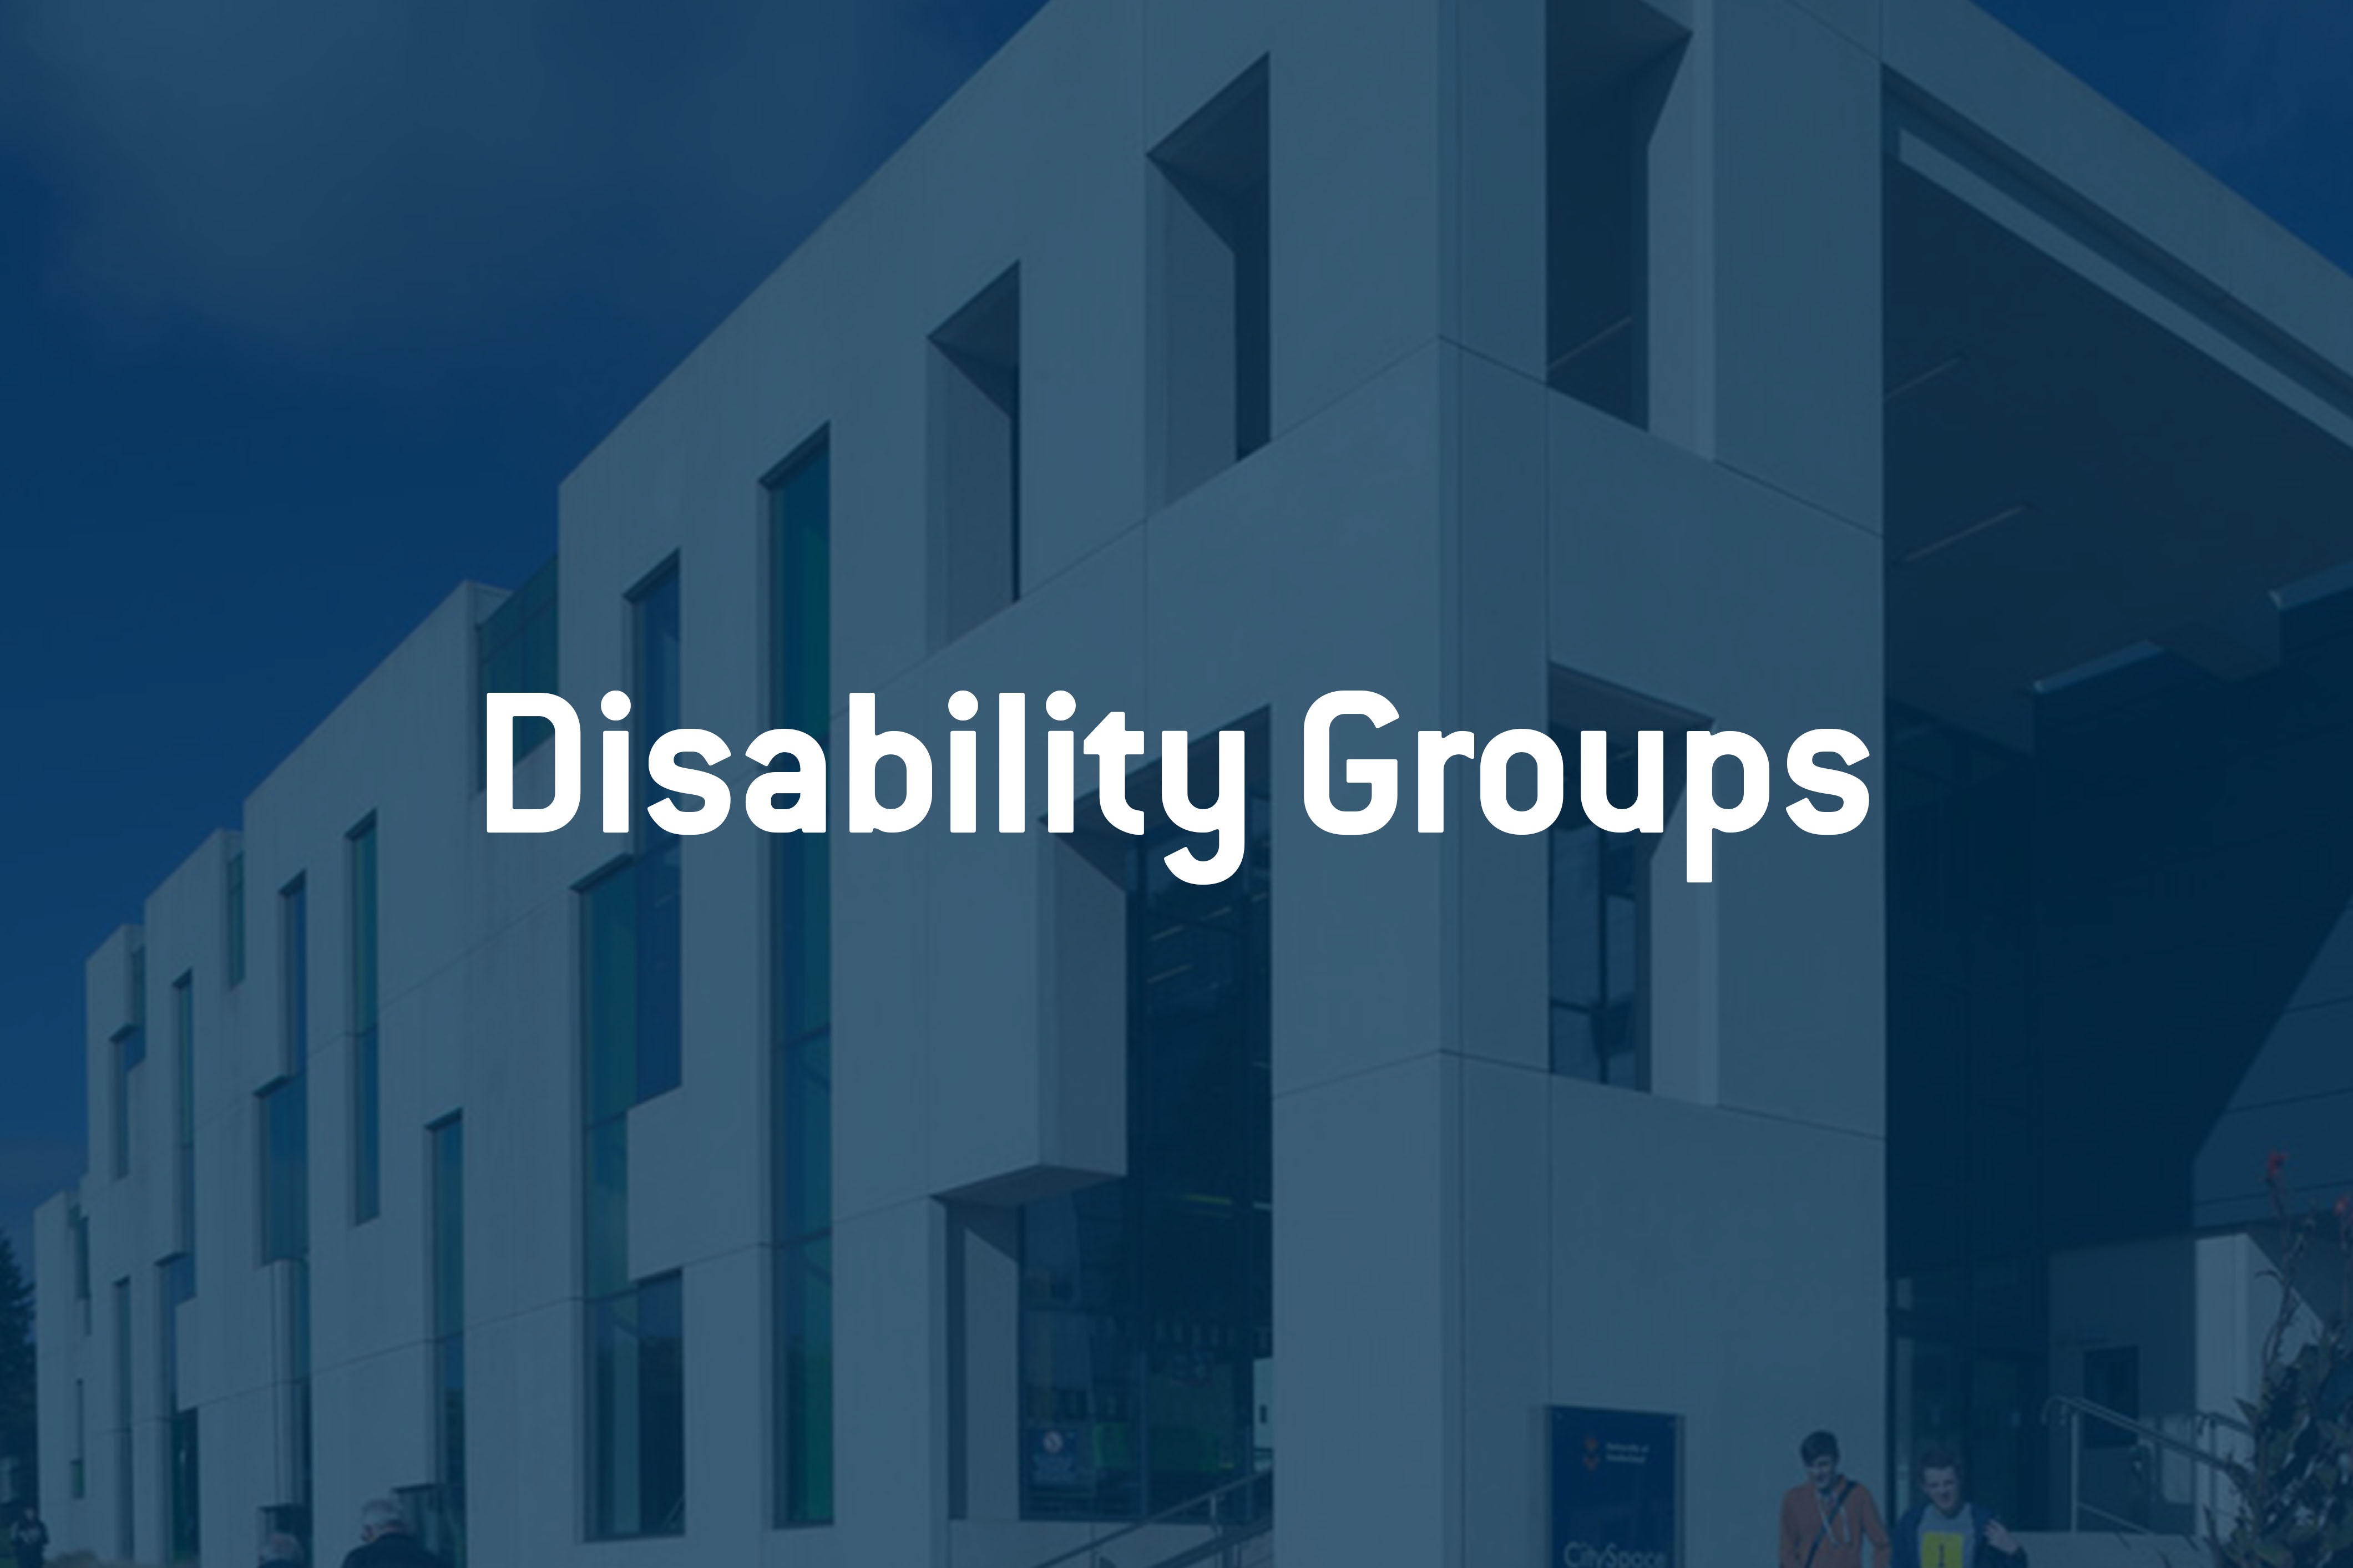 Disability groups image